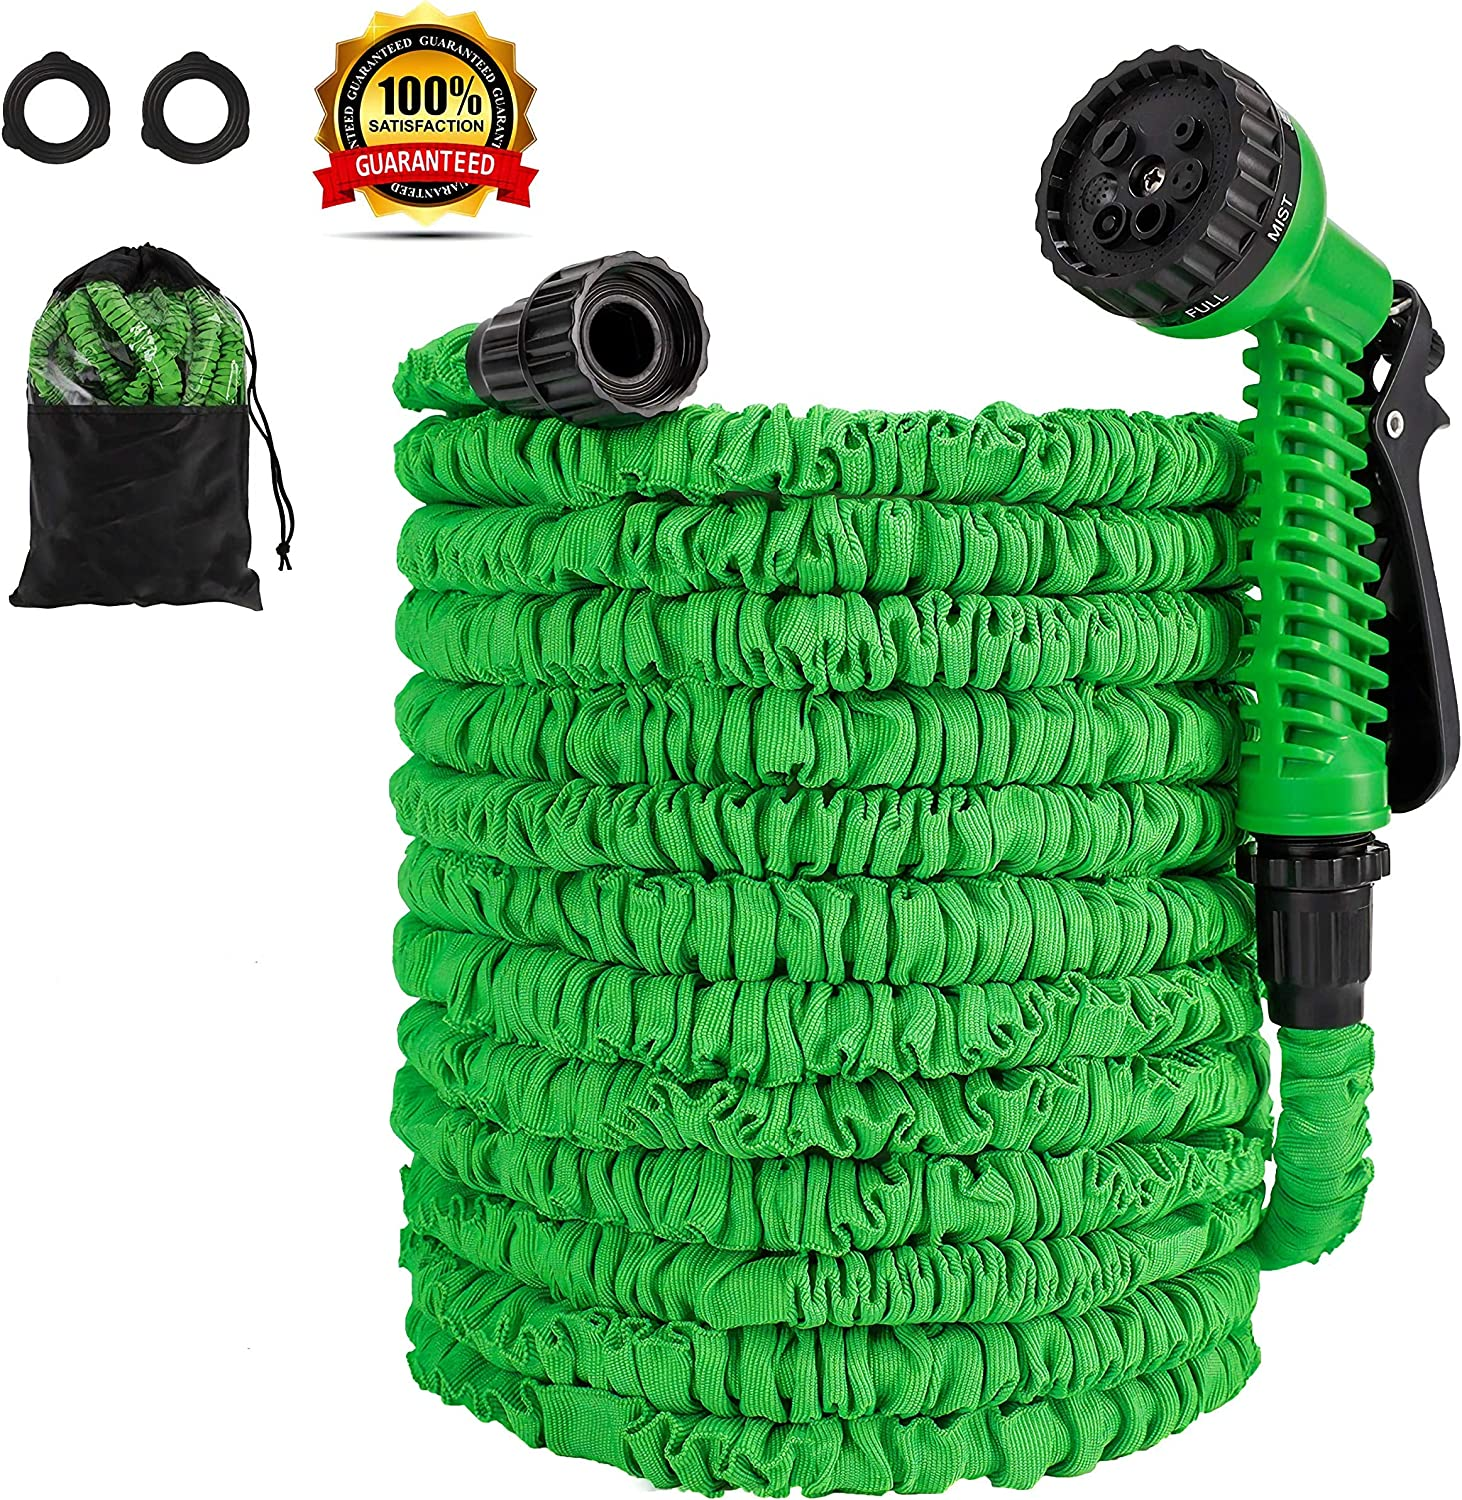 """ECONOM Expandable 50 ft Garden Water Hose - Hose Pipe with Premium Quality Double Latex & Lightweight 3/4"""" Solid Fittings with 7 Function High Pressure Spray Nozzle.Maneuverable Hose."""